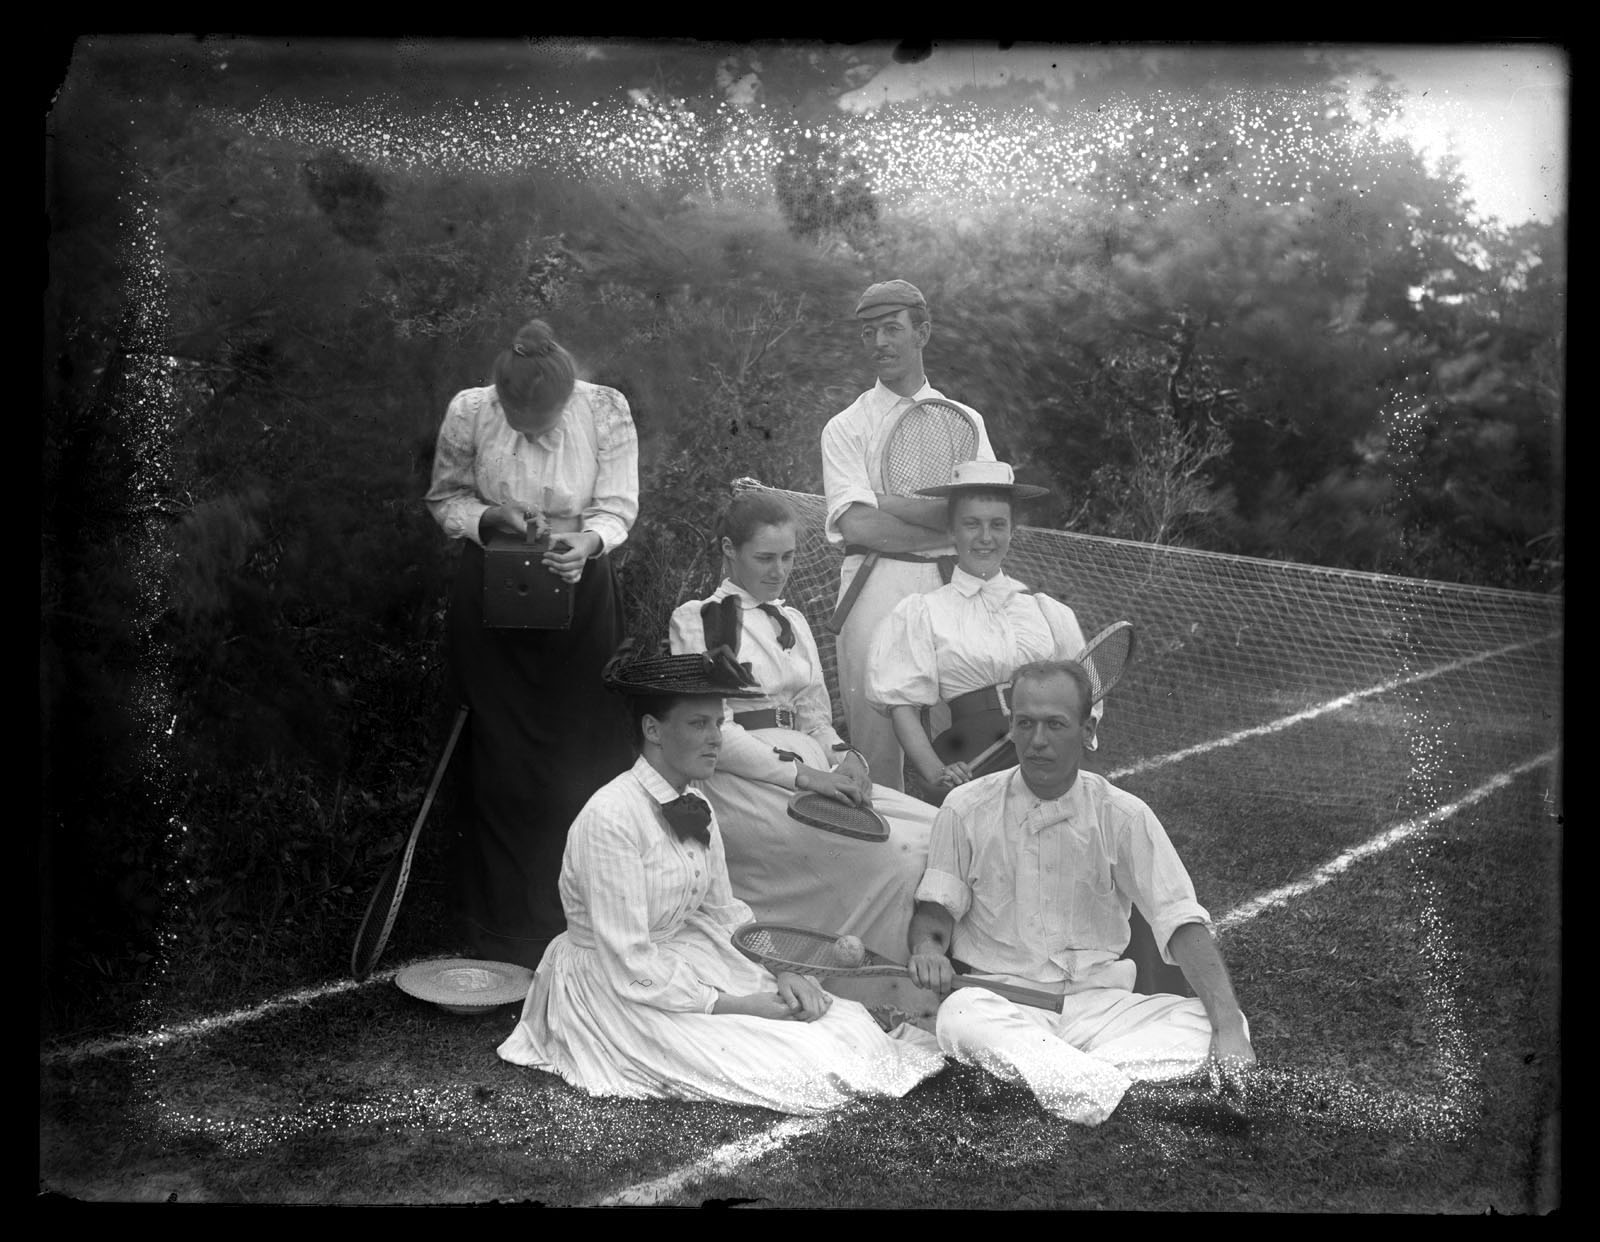 Marriott Canby Morris. [Tennis Party Including Bess Morris and Woman with a Camera], ca. 1880-ca. 1900. Glass negative. Marriott C. Morris Collection. [*P.9895.12.7]